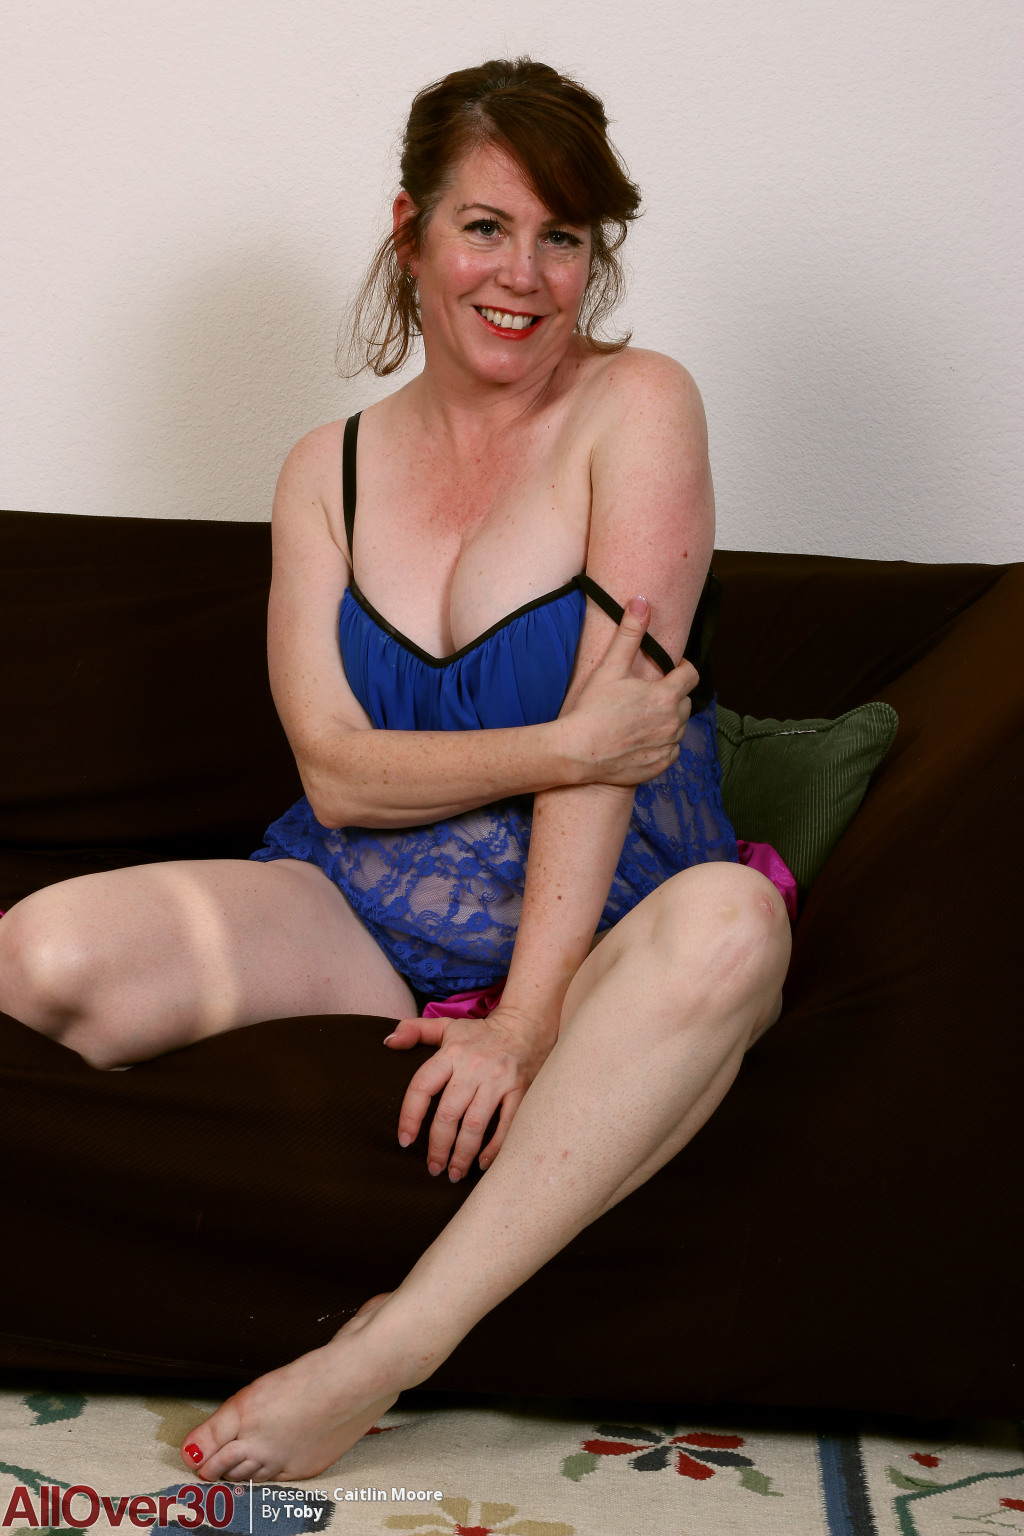 Allover30Freecom- Hot Older Women - 52 Year Old Caitlin -2368